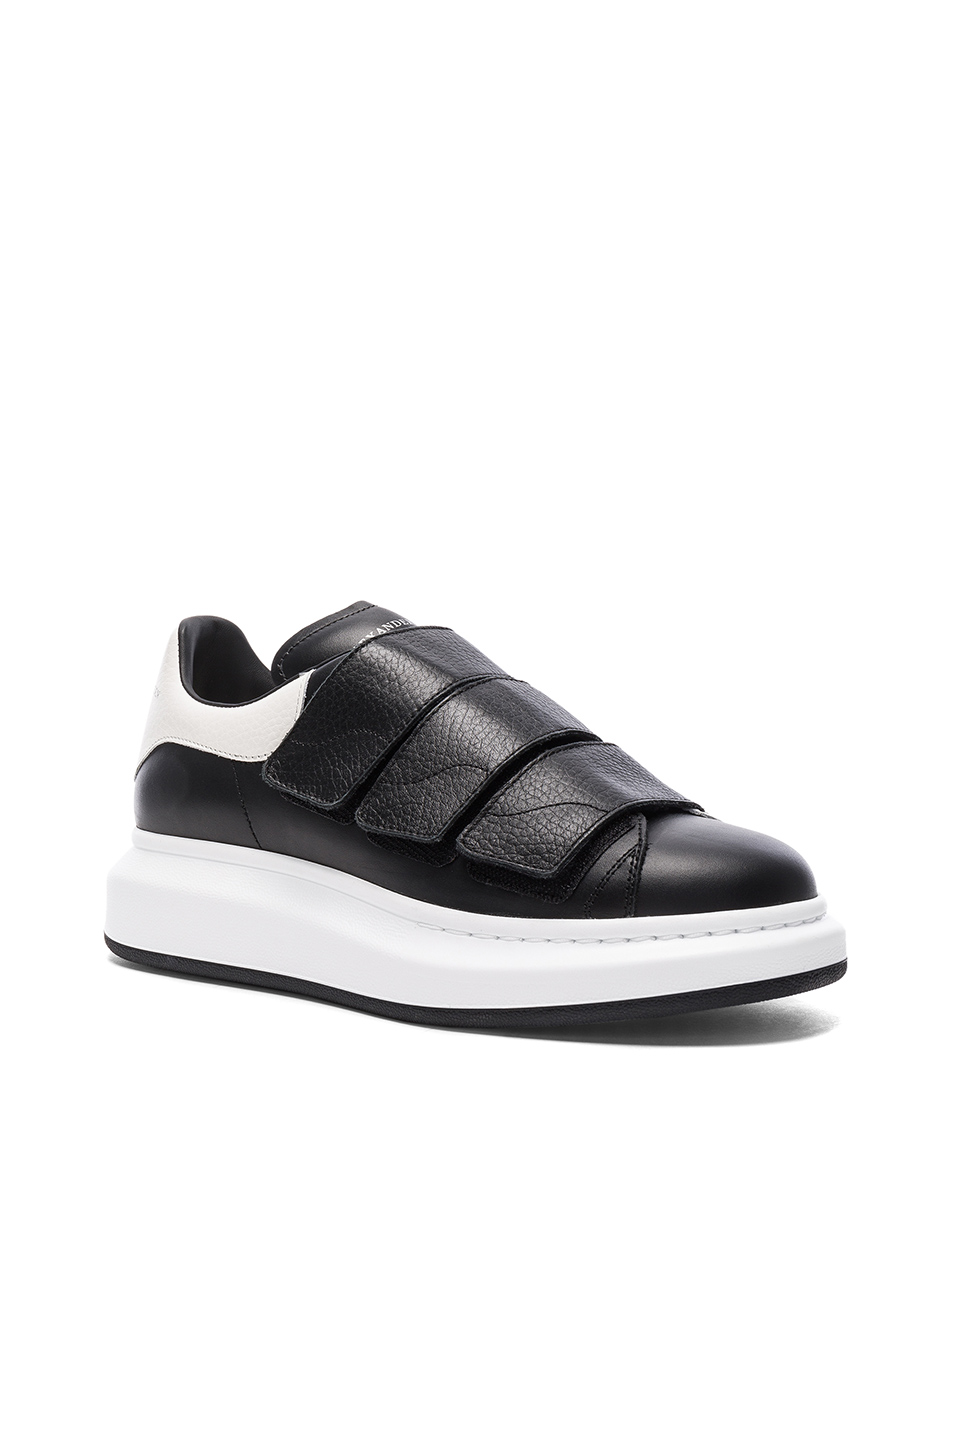 Alexander McQueen Leather Platform Velcro Sneakers in Black